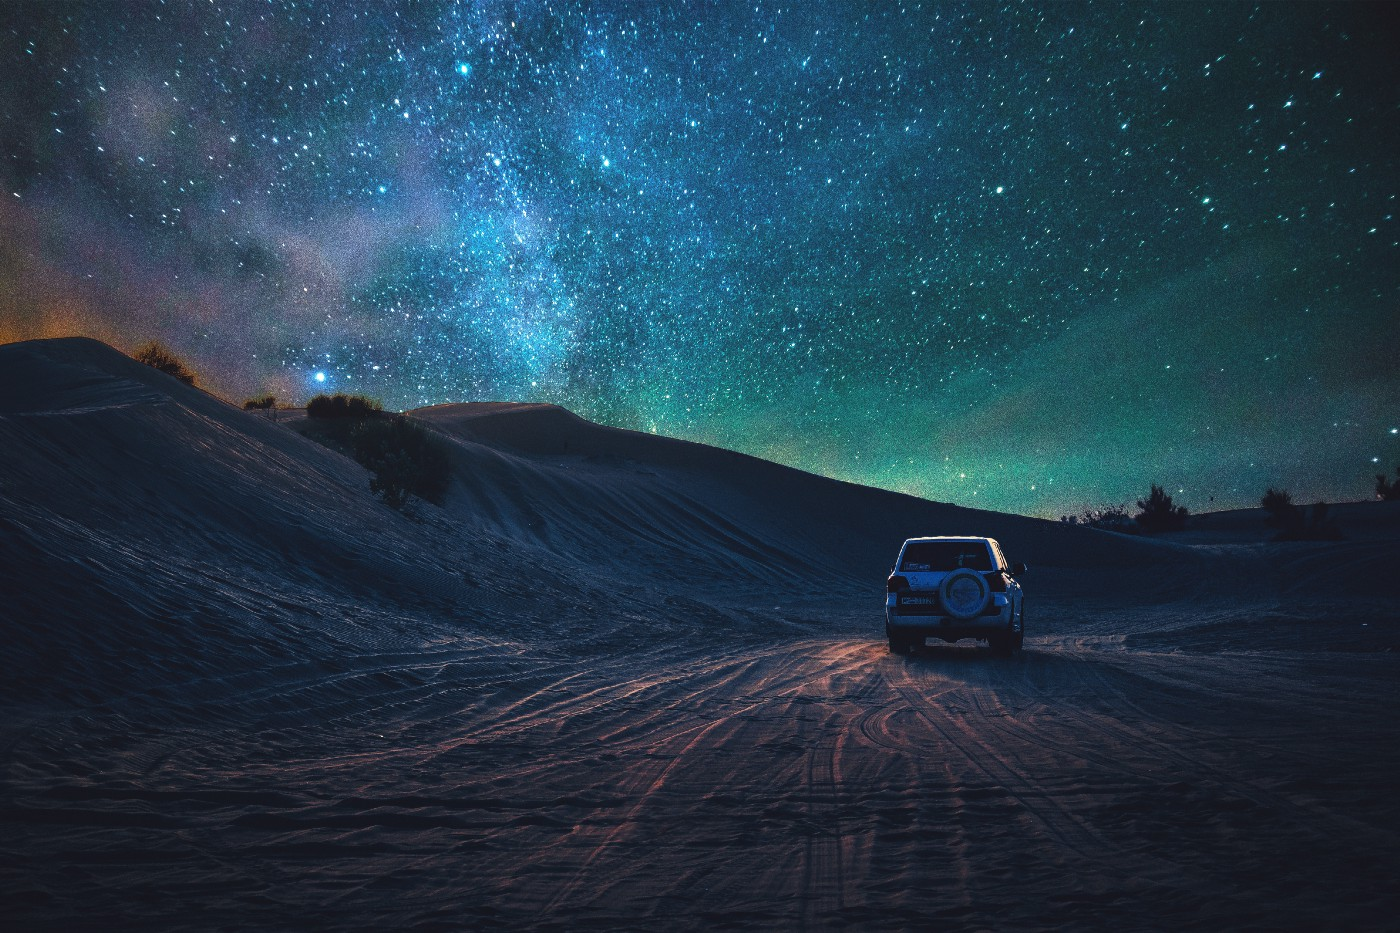 car driving at night under sky lit up by the Aurora Borealis